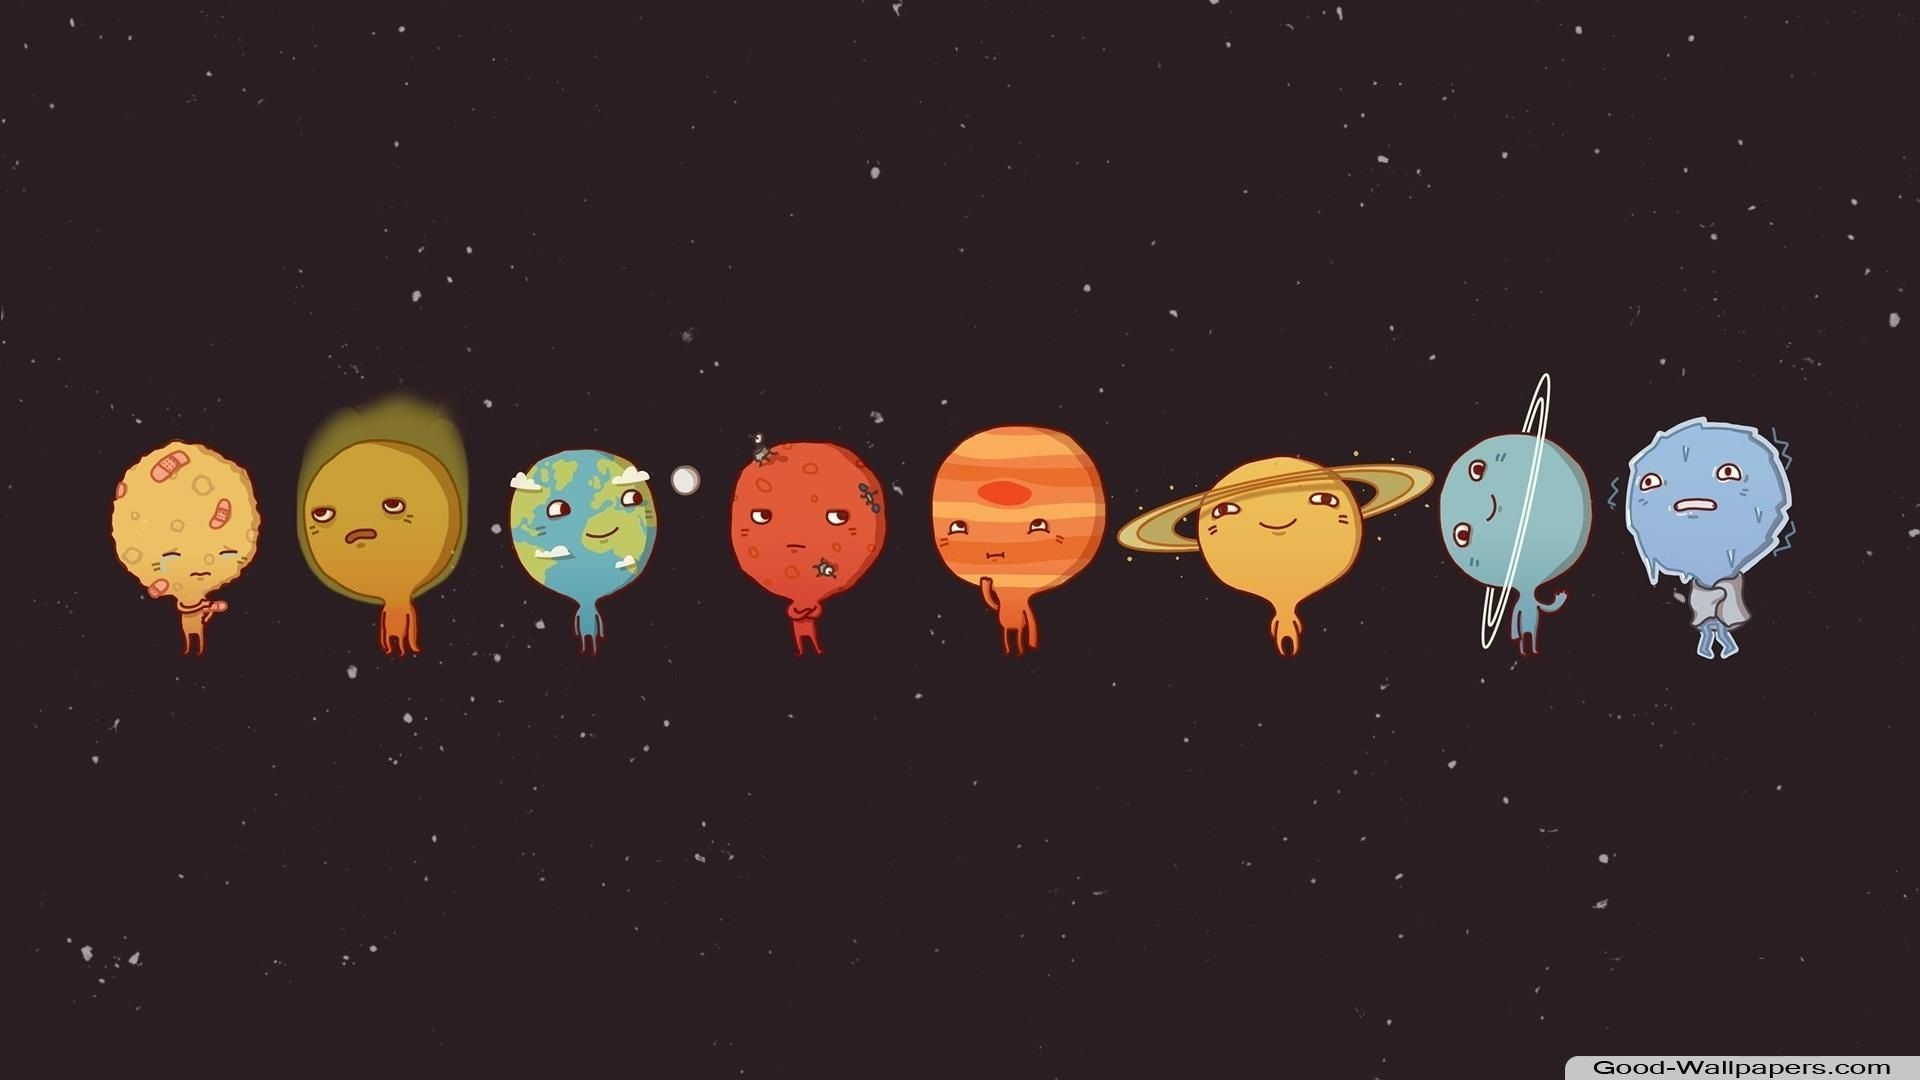 Funny Space Cute Wallpapers For Computer Desktop Wallpapers Tumblr Wallpaper Notebook